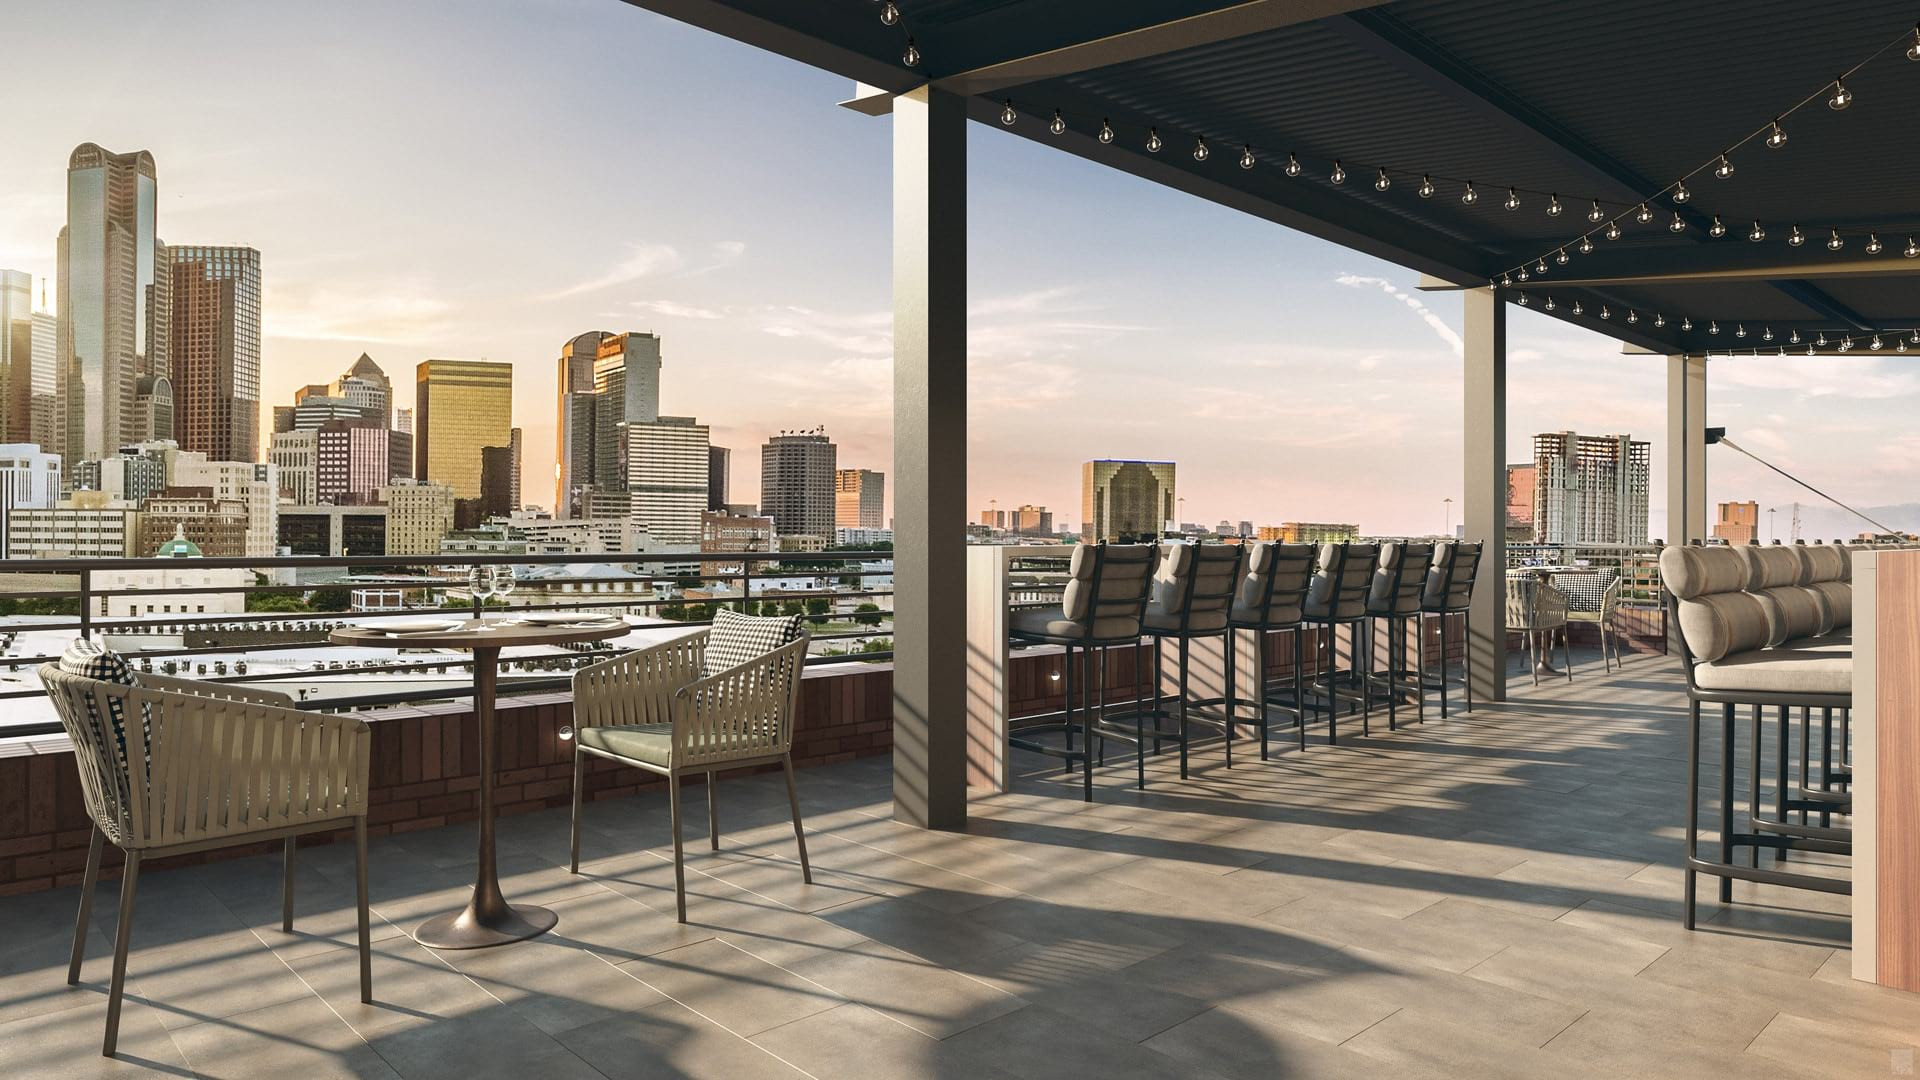 awning covered rooftop terrace with views of the Dallas skyline